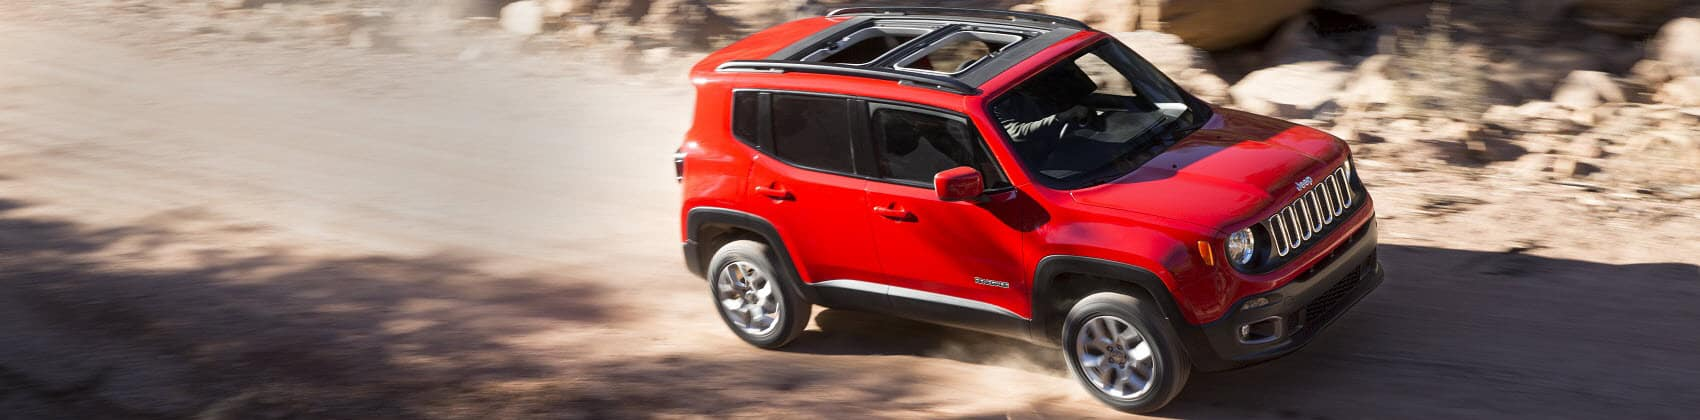 Jeep Renegade Off-Roading